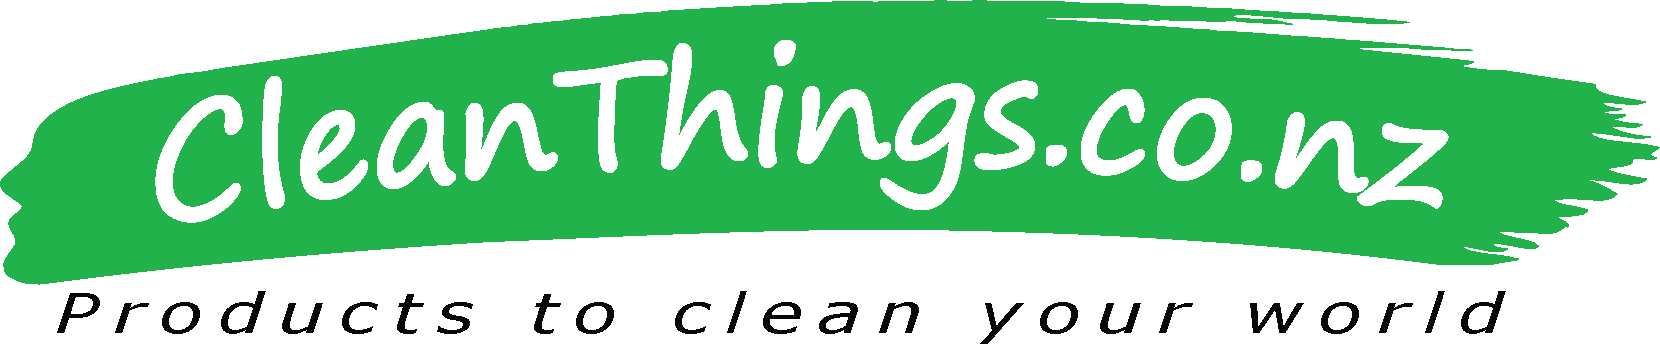 Clean Things